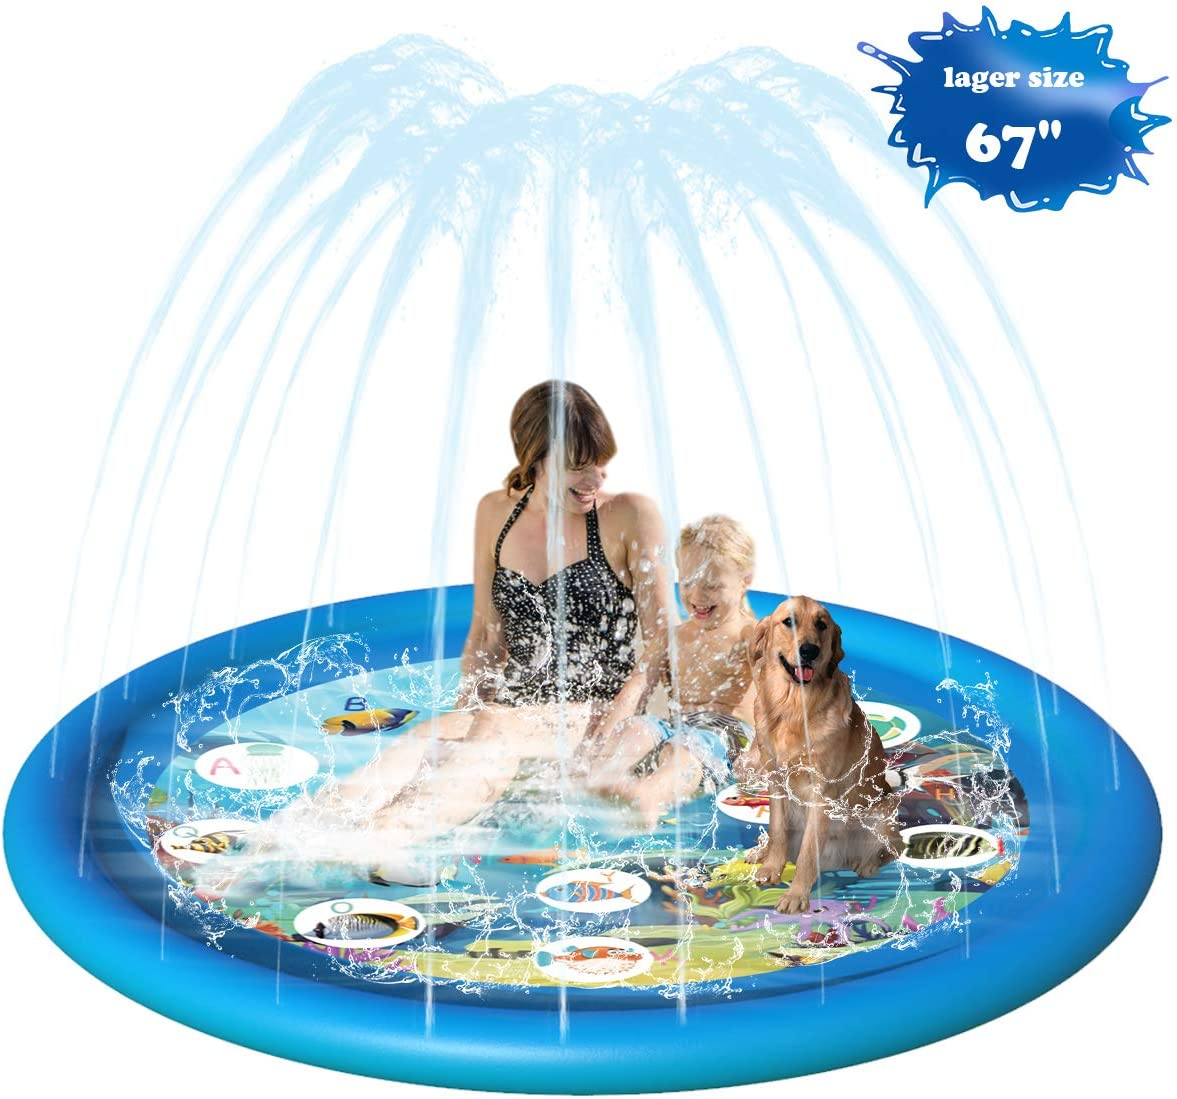 Amazon Coupon Code for Sprinkler for Kids